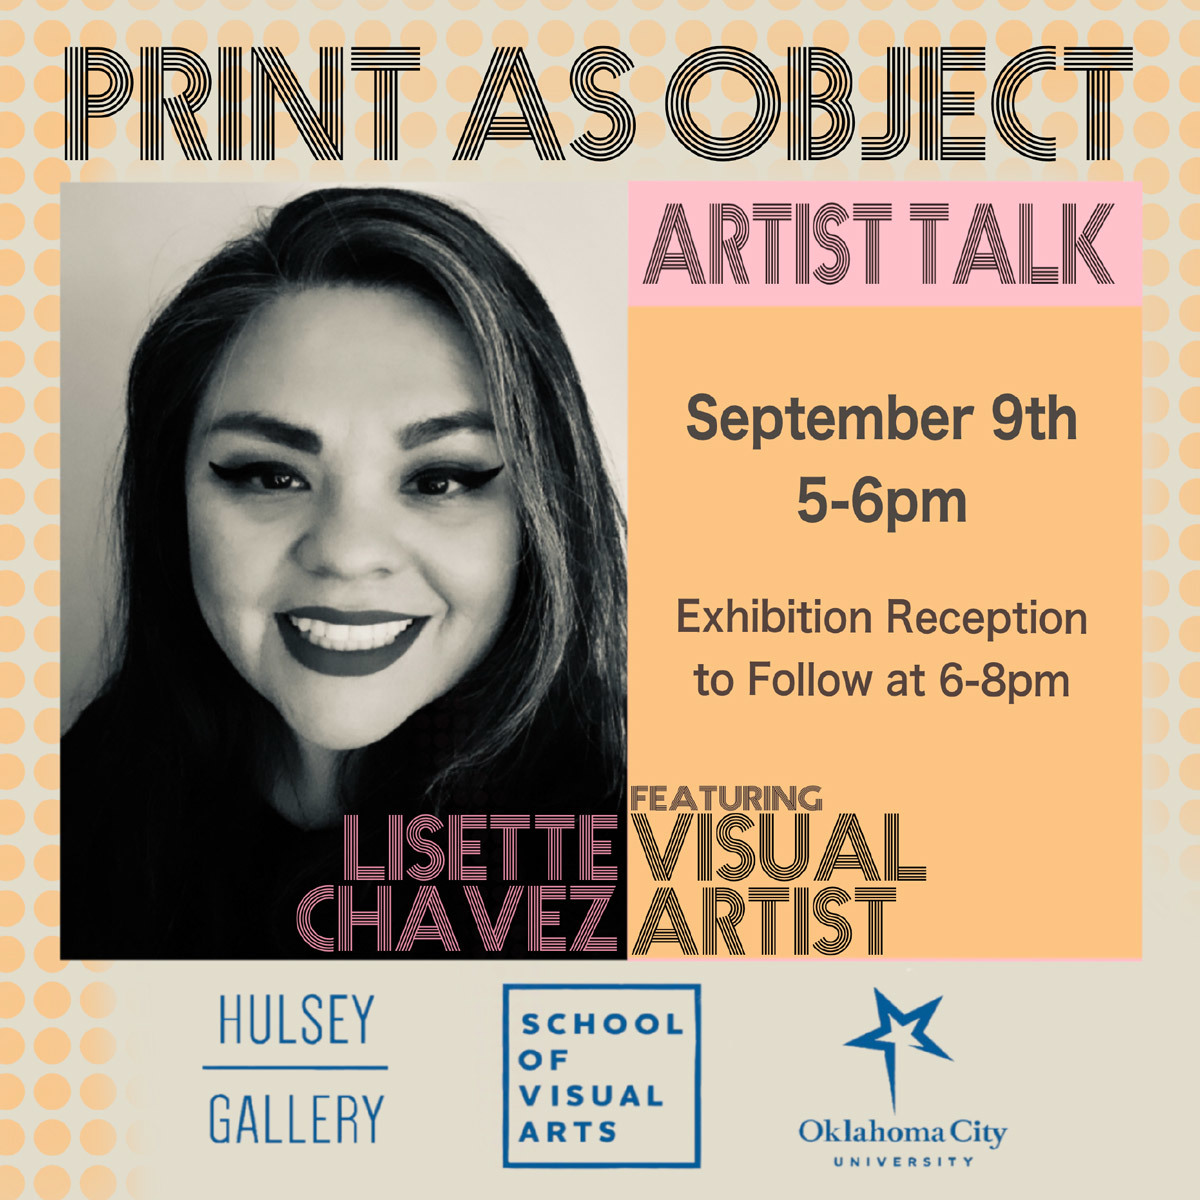 print as object artist talk - september 9th 5-6pm - exhibition reception to follow at 6-8pm - lisette chavez